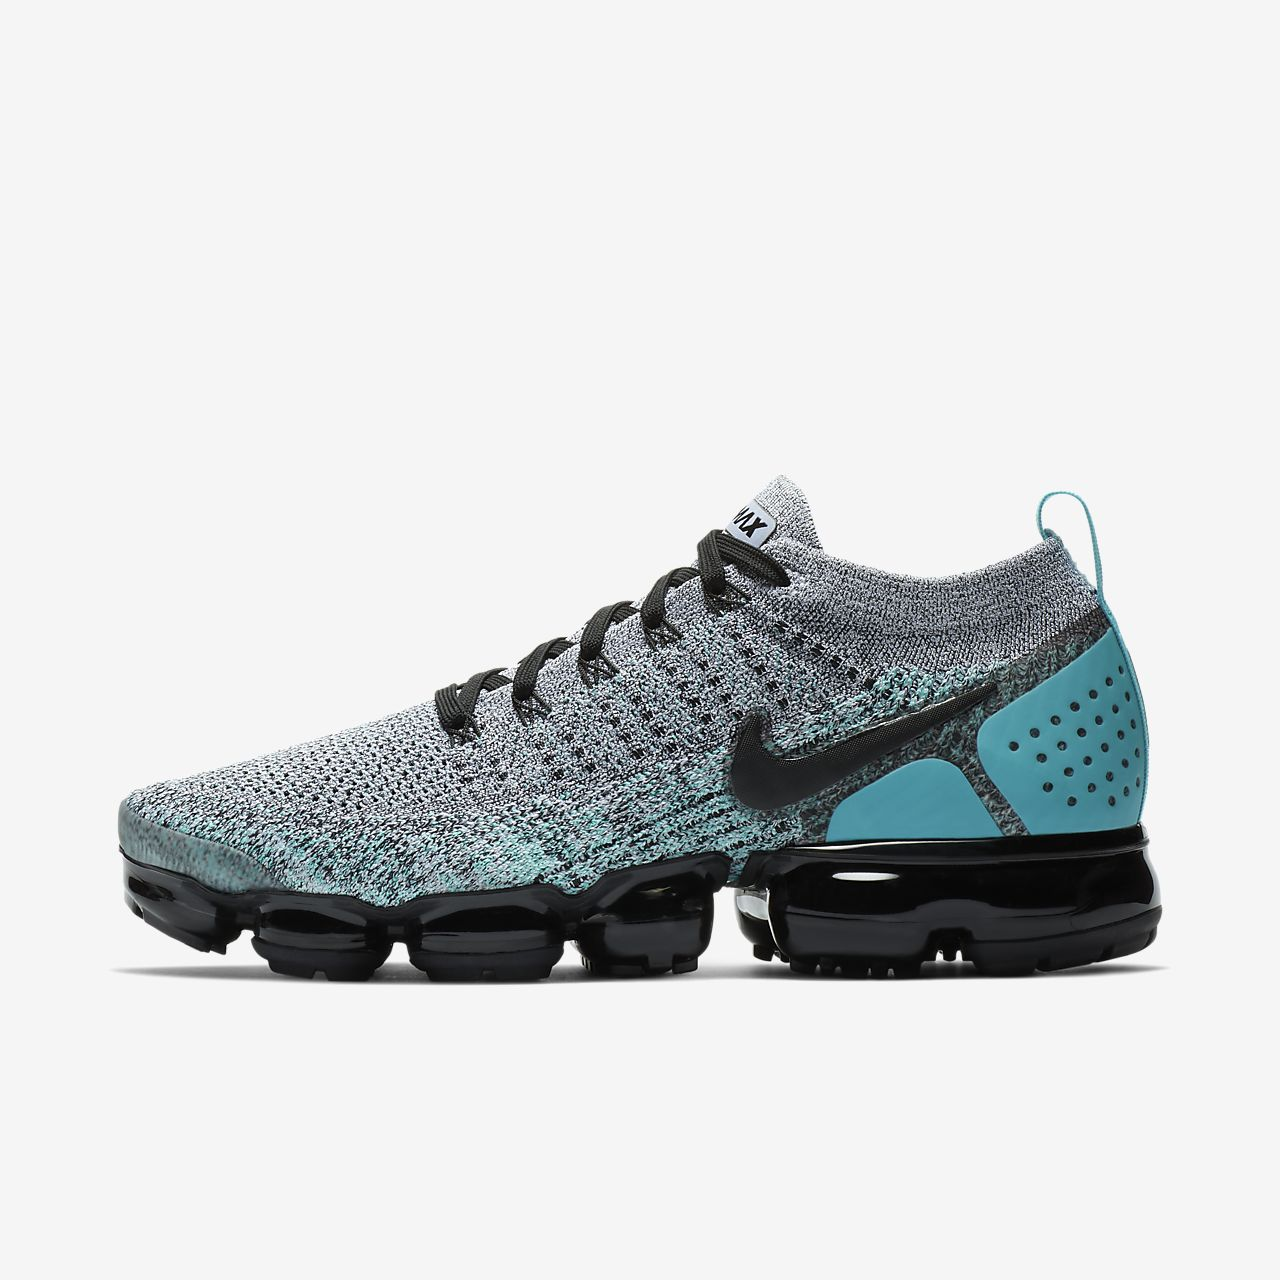 5bfd78304161 Nike Vapor Max   Buy Nike Shoes   Sneakers - Bluelilyandblue.com